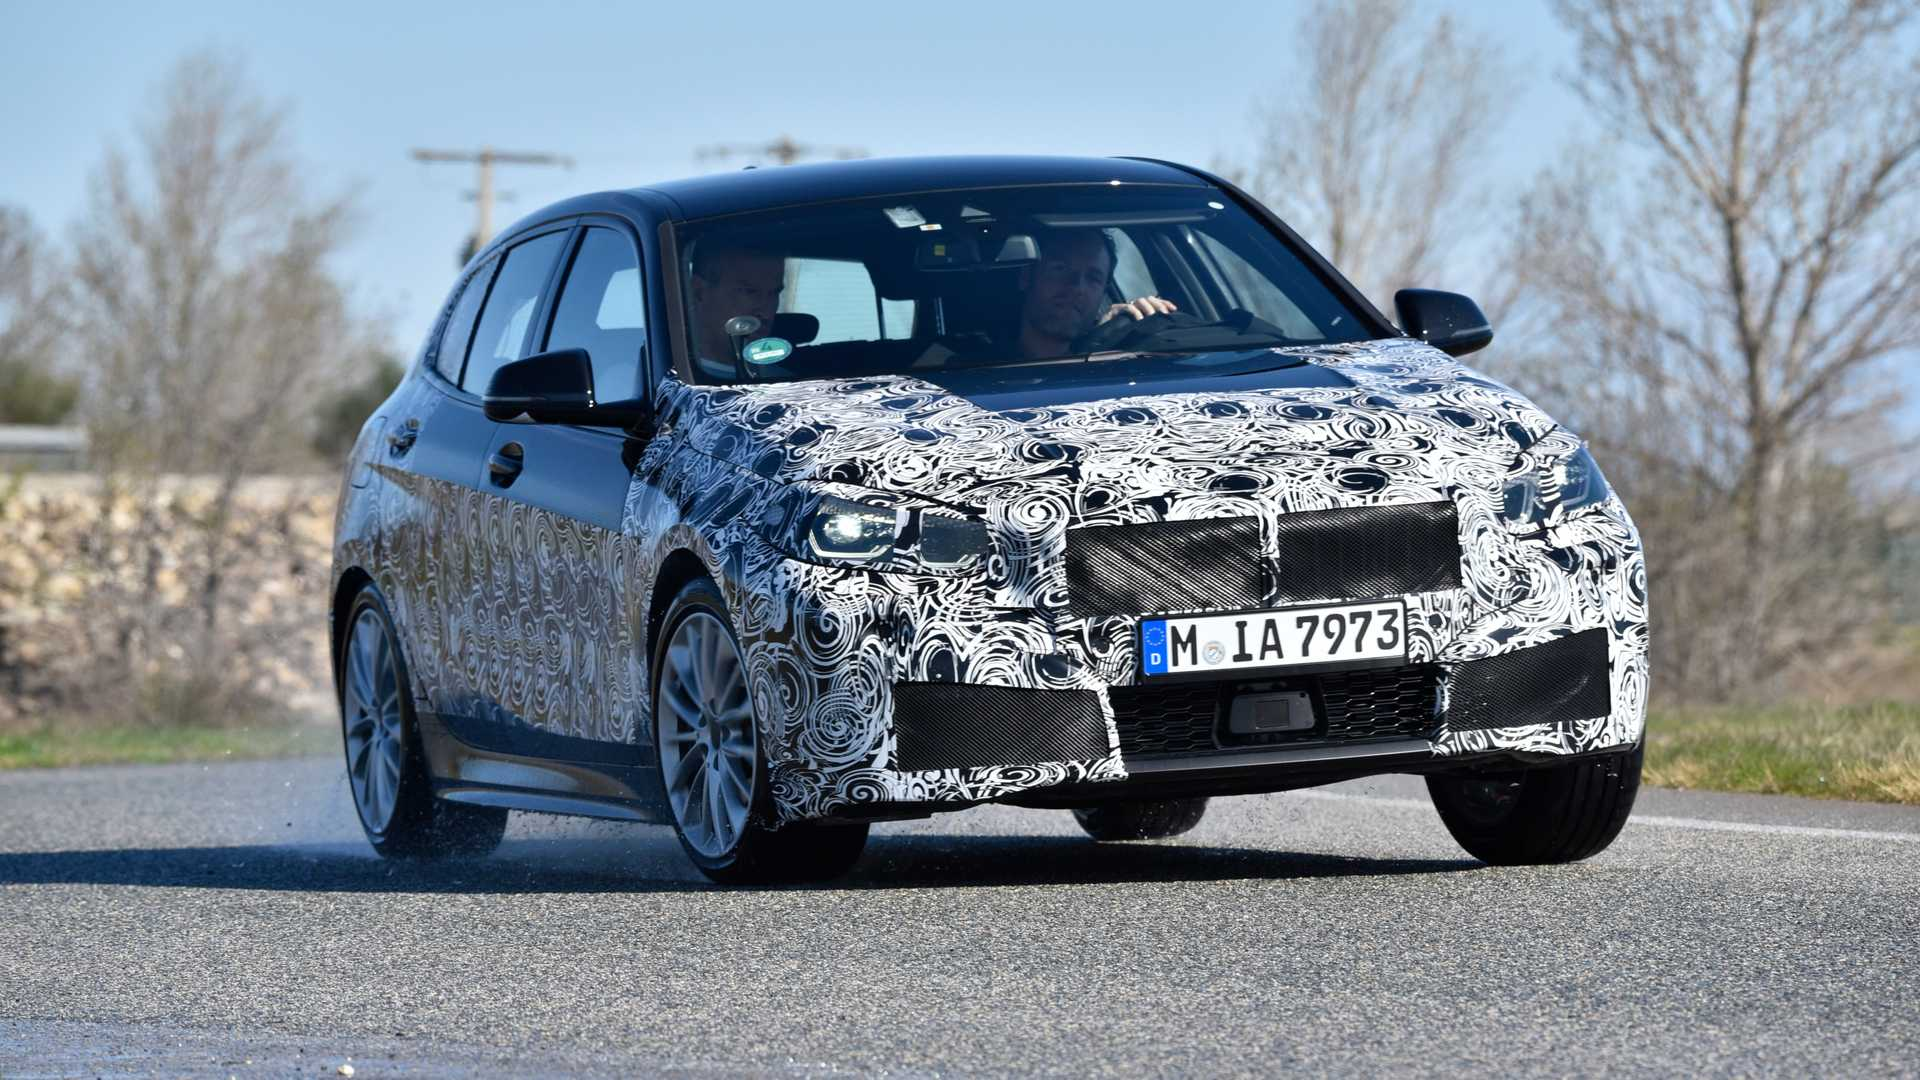 2020 Bmw 1 Series With Three Cylinder Engine To Make 138 Hp